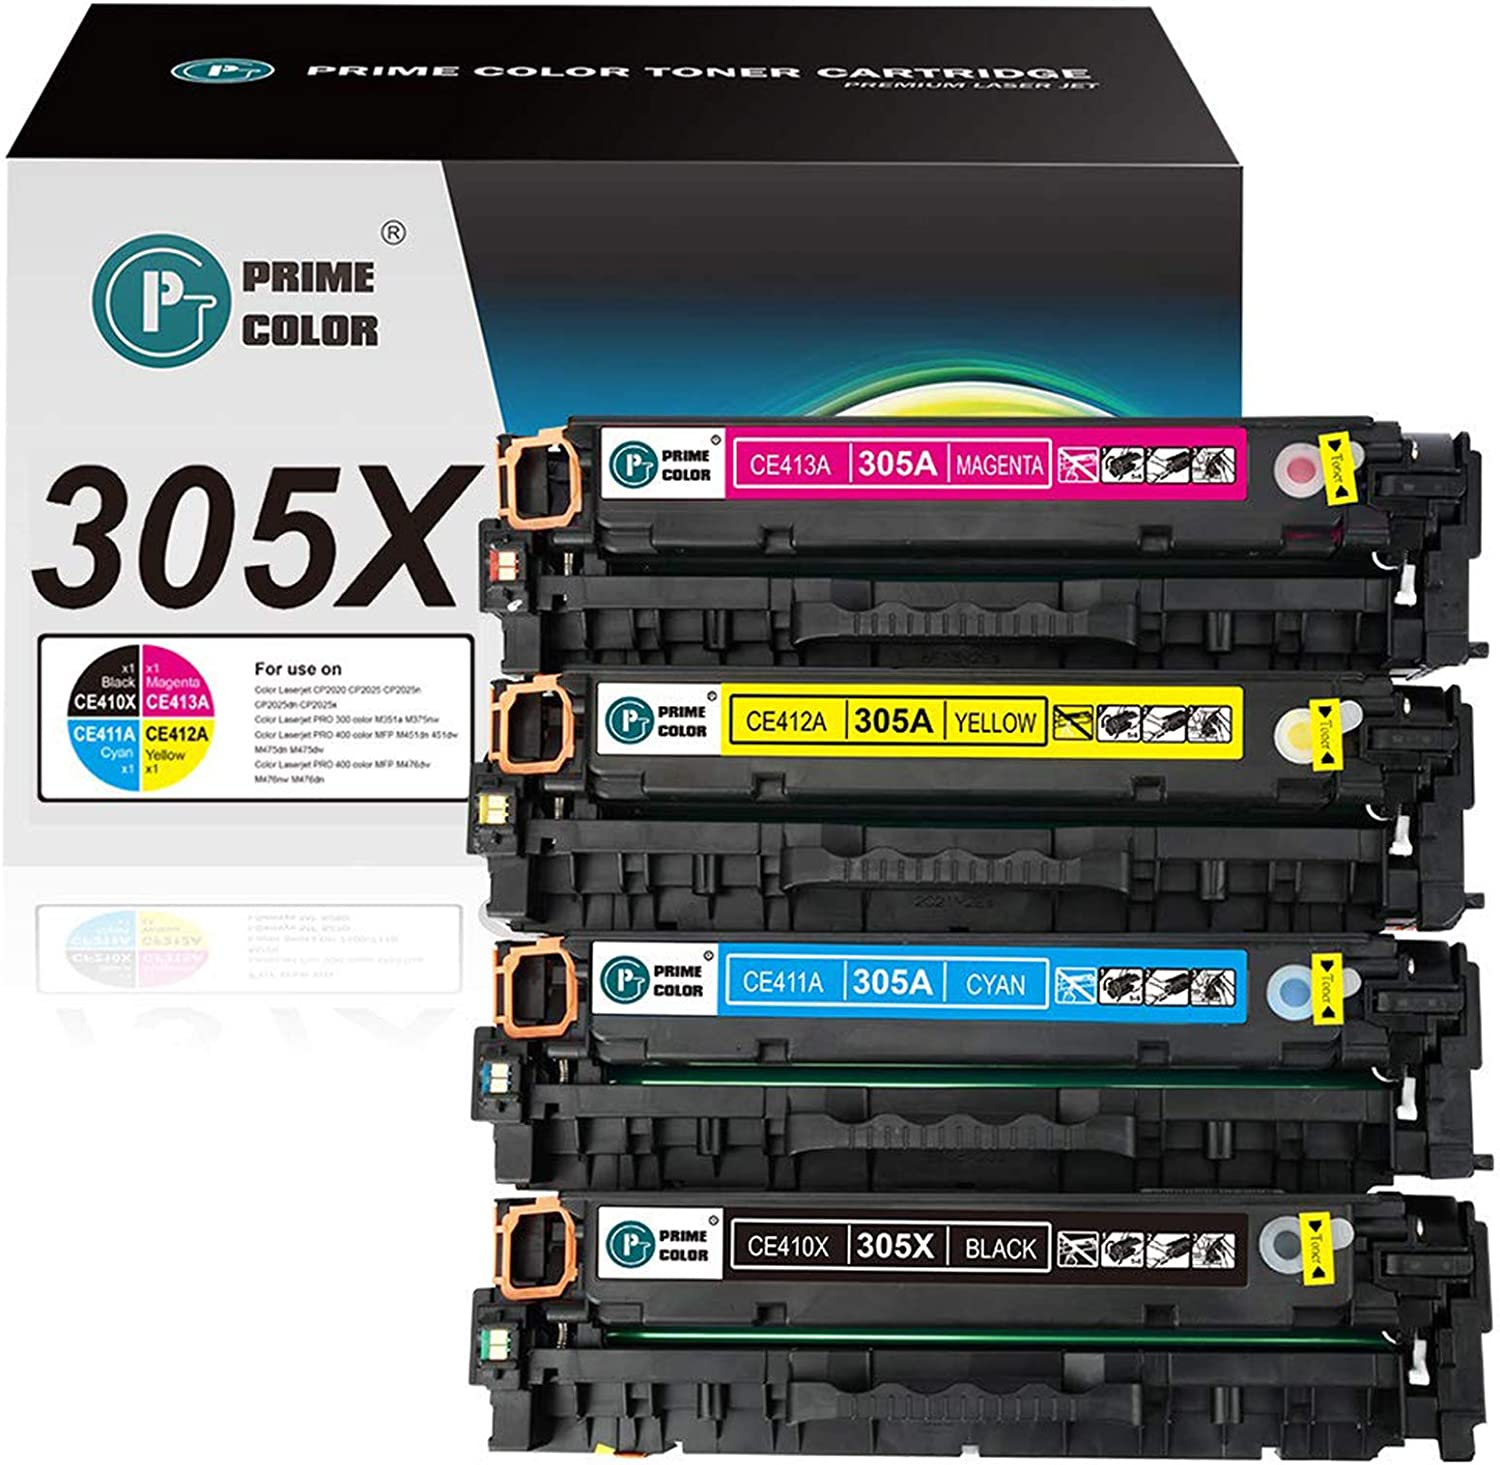 Prime Color Remanufactured Toner Cartridges Replacement for HP 305A 305X CE410X to use with Laserjet Pro 400 Laserjet Pro 300 M451nw M451dn M451dw MFP M475dw M475dn M375nw (Black Cyan Yellow Magenta)